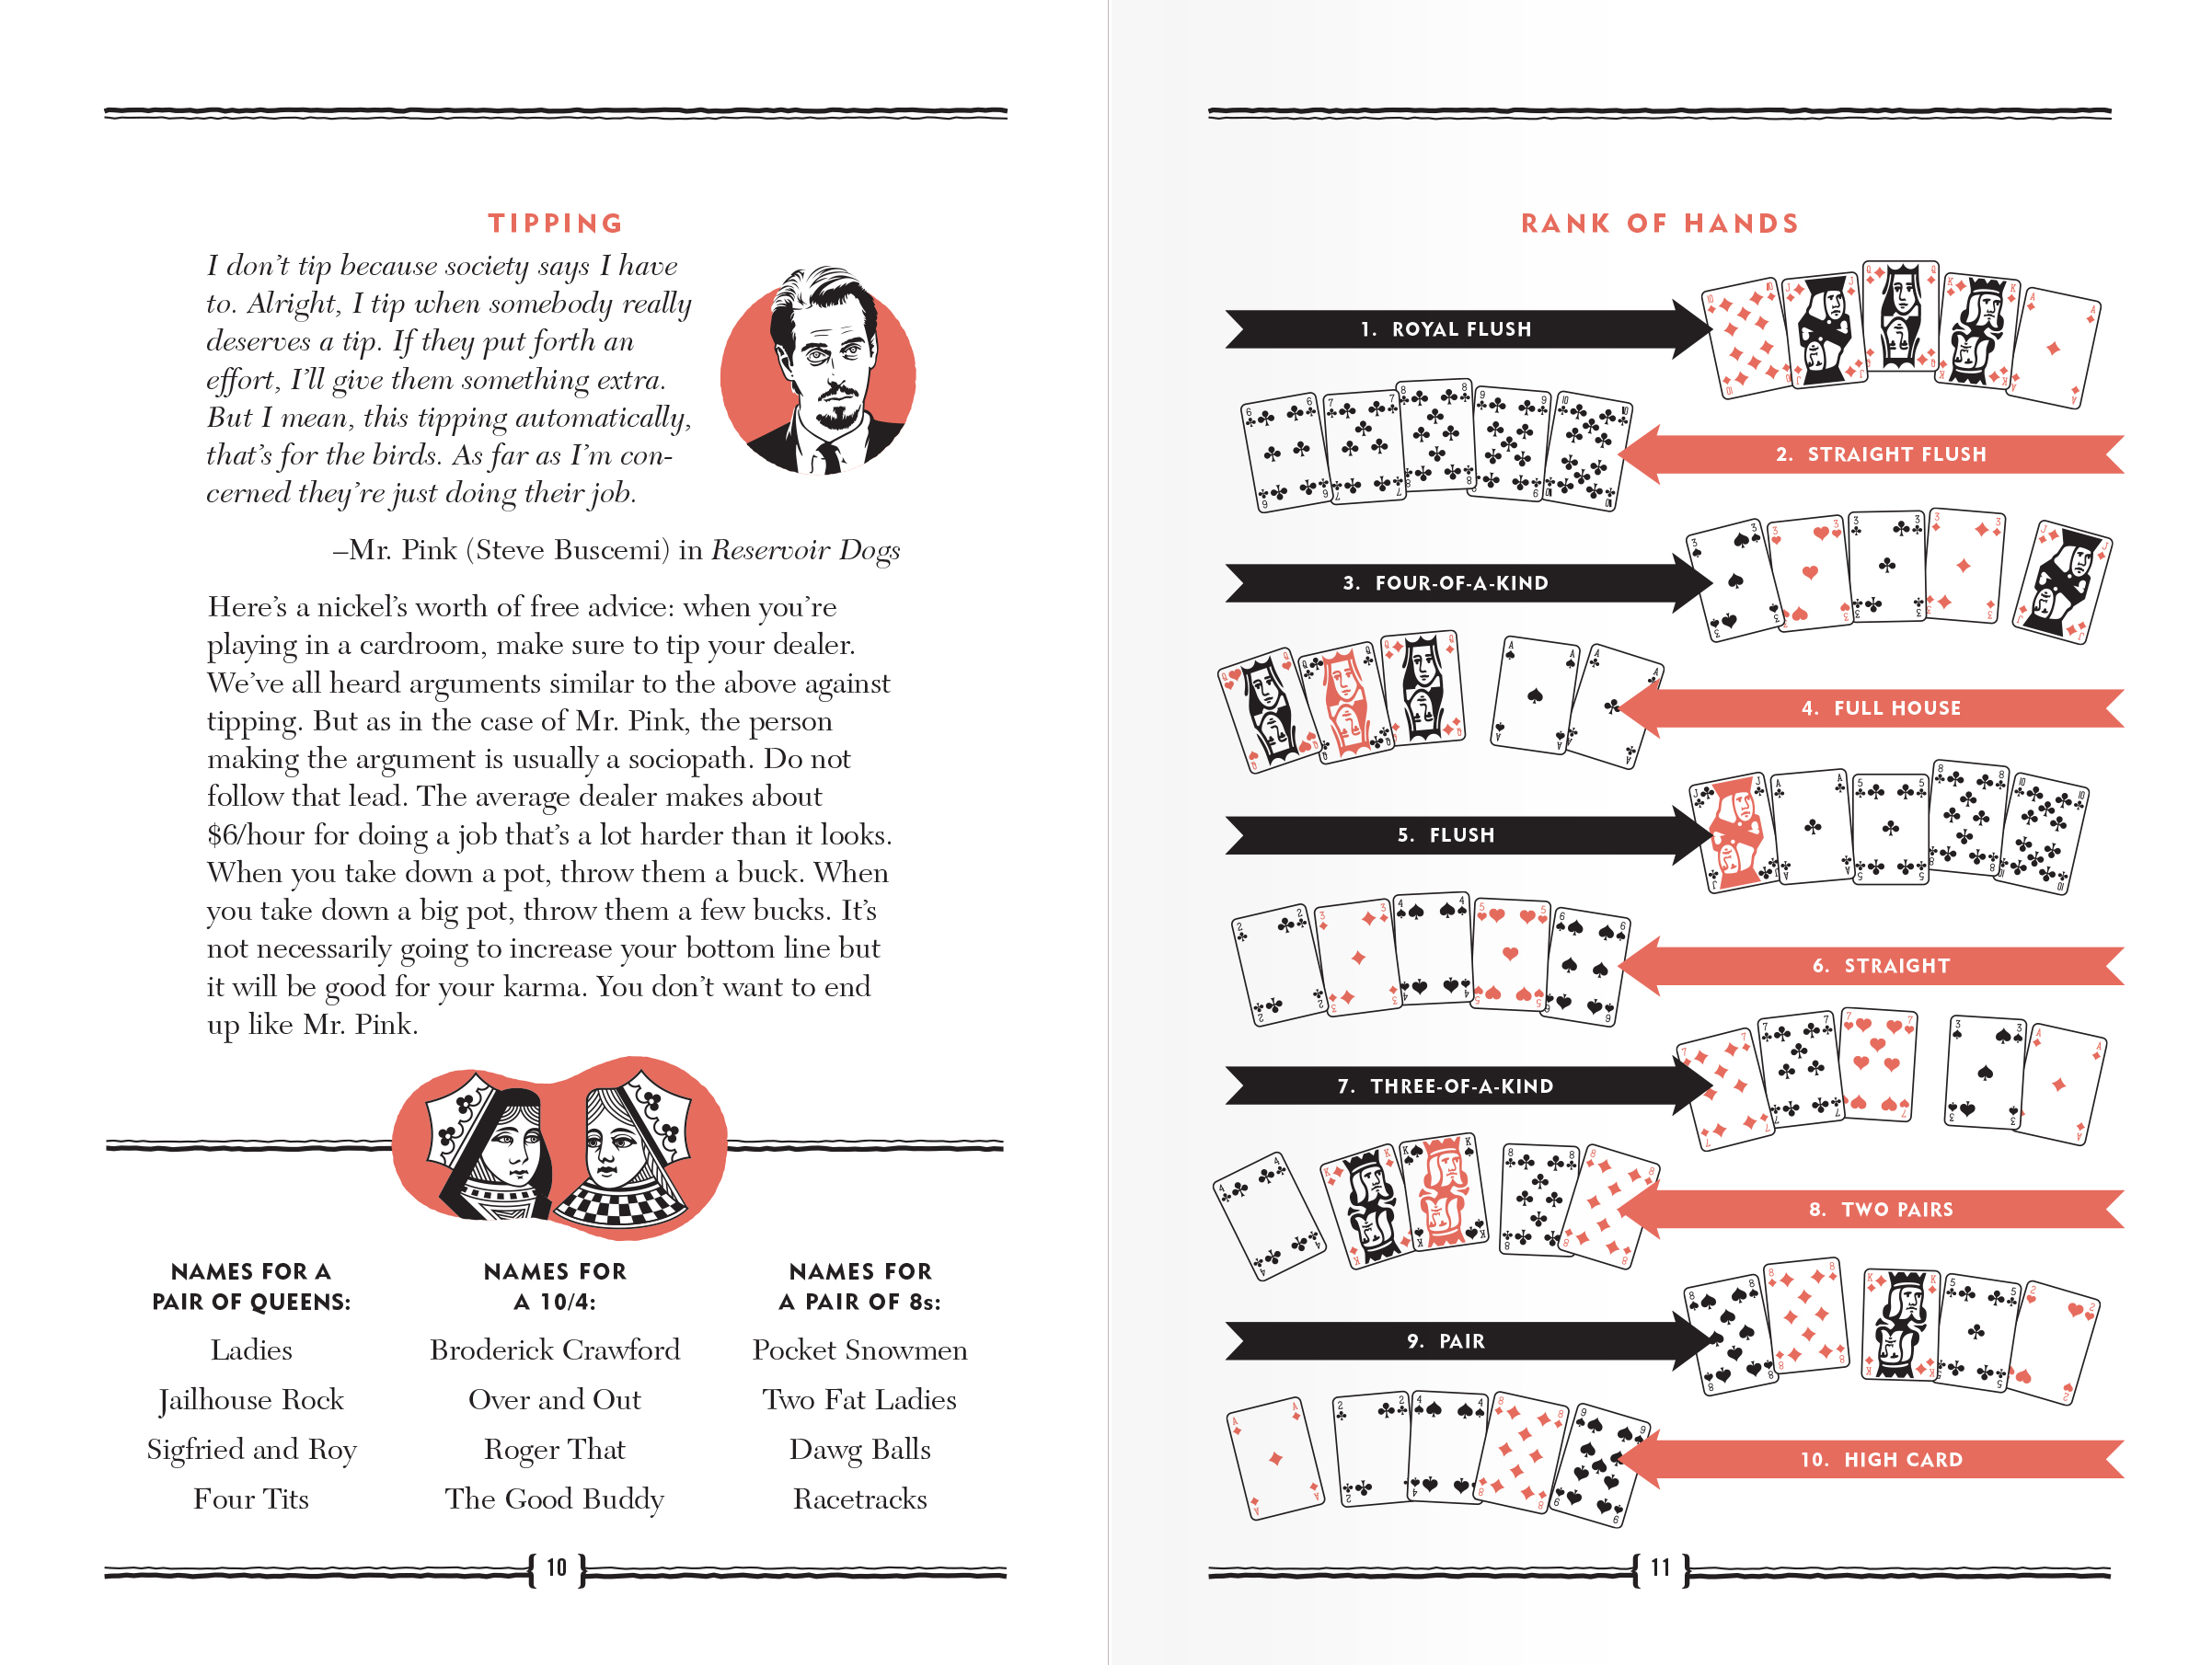 The Poker Aficionado interior spread